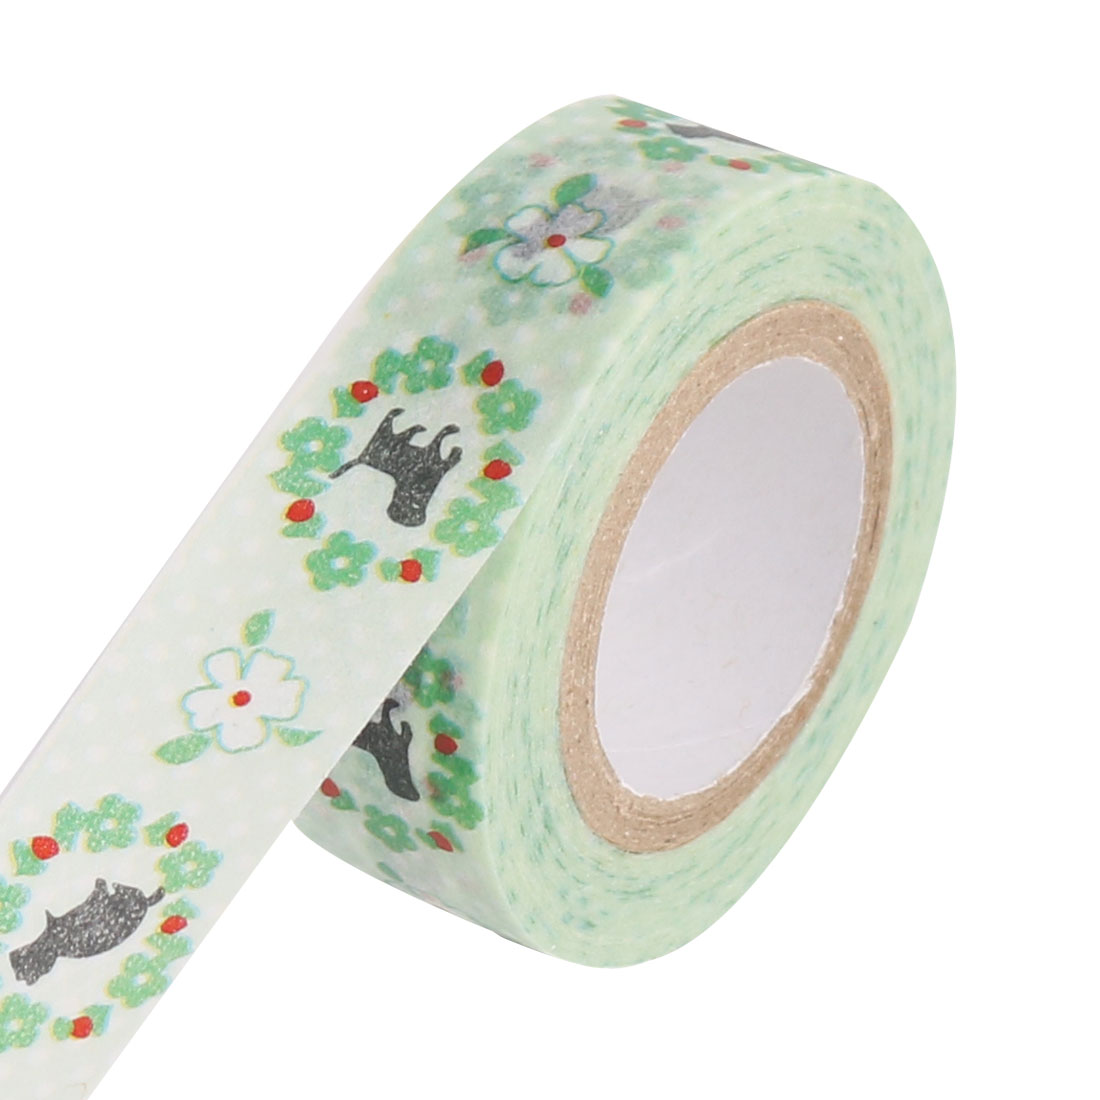 Floral Hoop Pattern Scrapbooling DIY Craft Decorative Washi Tape Roll